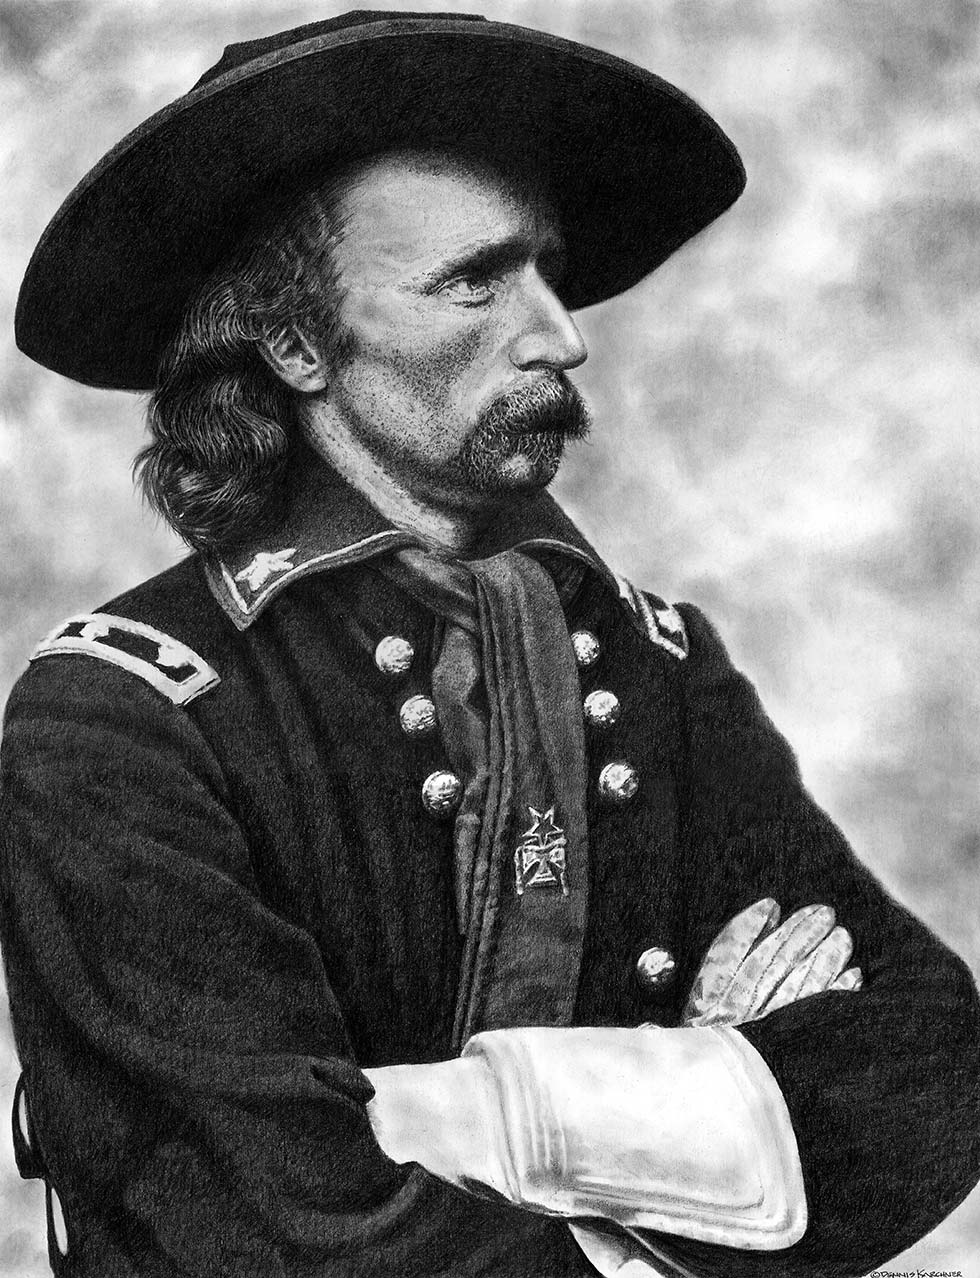 The Yankee Swashbuckler €� George Custer